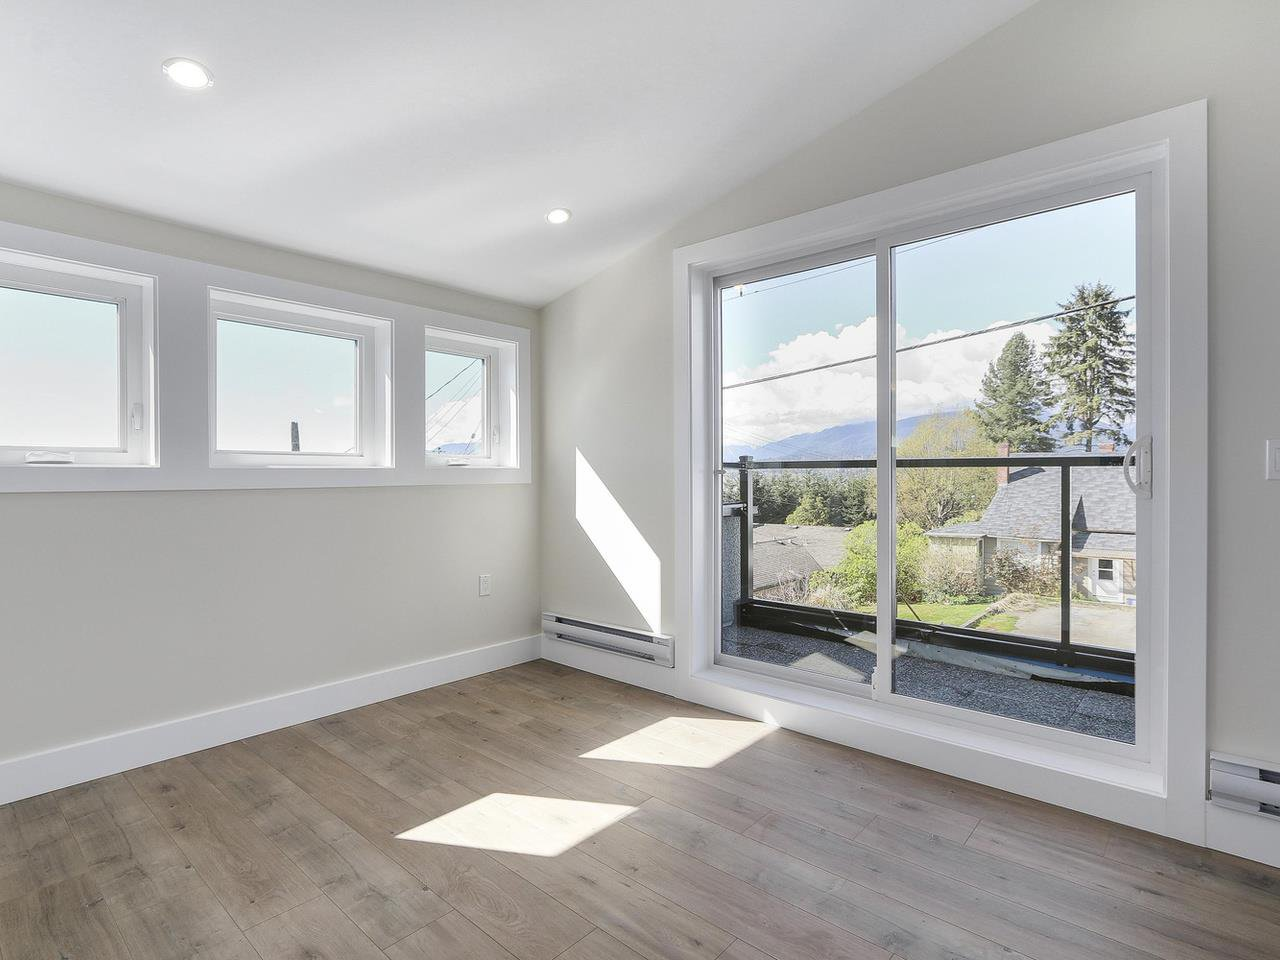 Photo 19: Photos: 3539 ETON STREET in Vancouver: Hastings East House for sale (Vancouver East)  : MLS®# R2159493